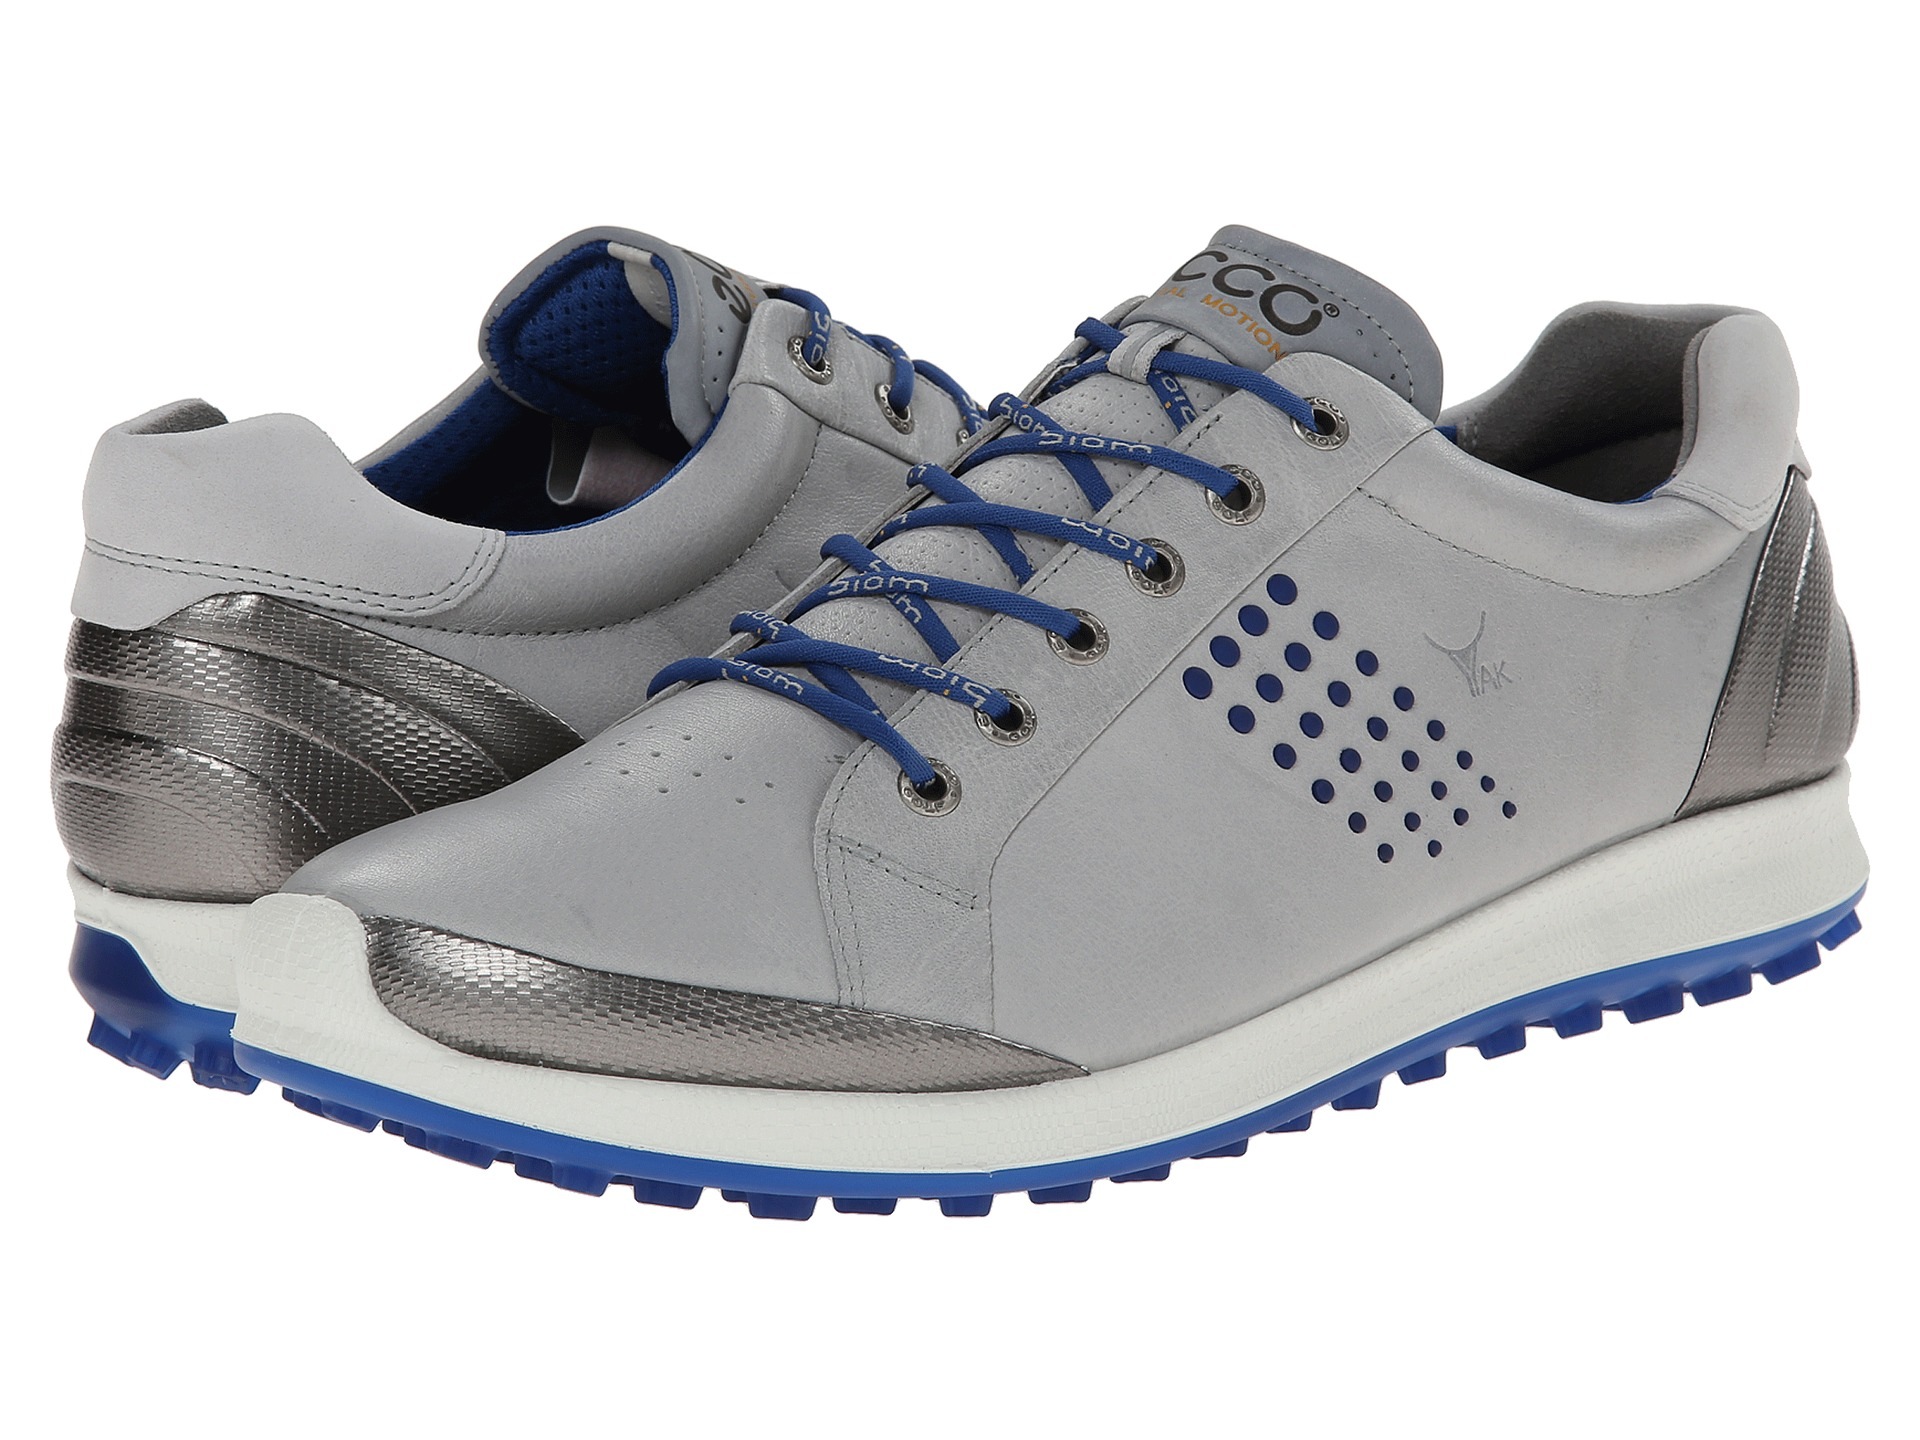 Zappos Golf Shoes